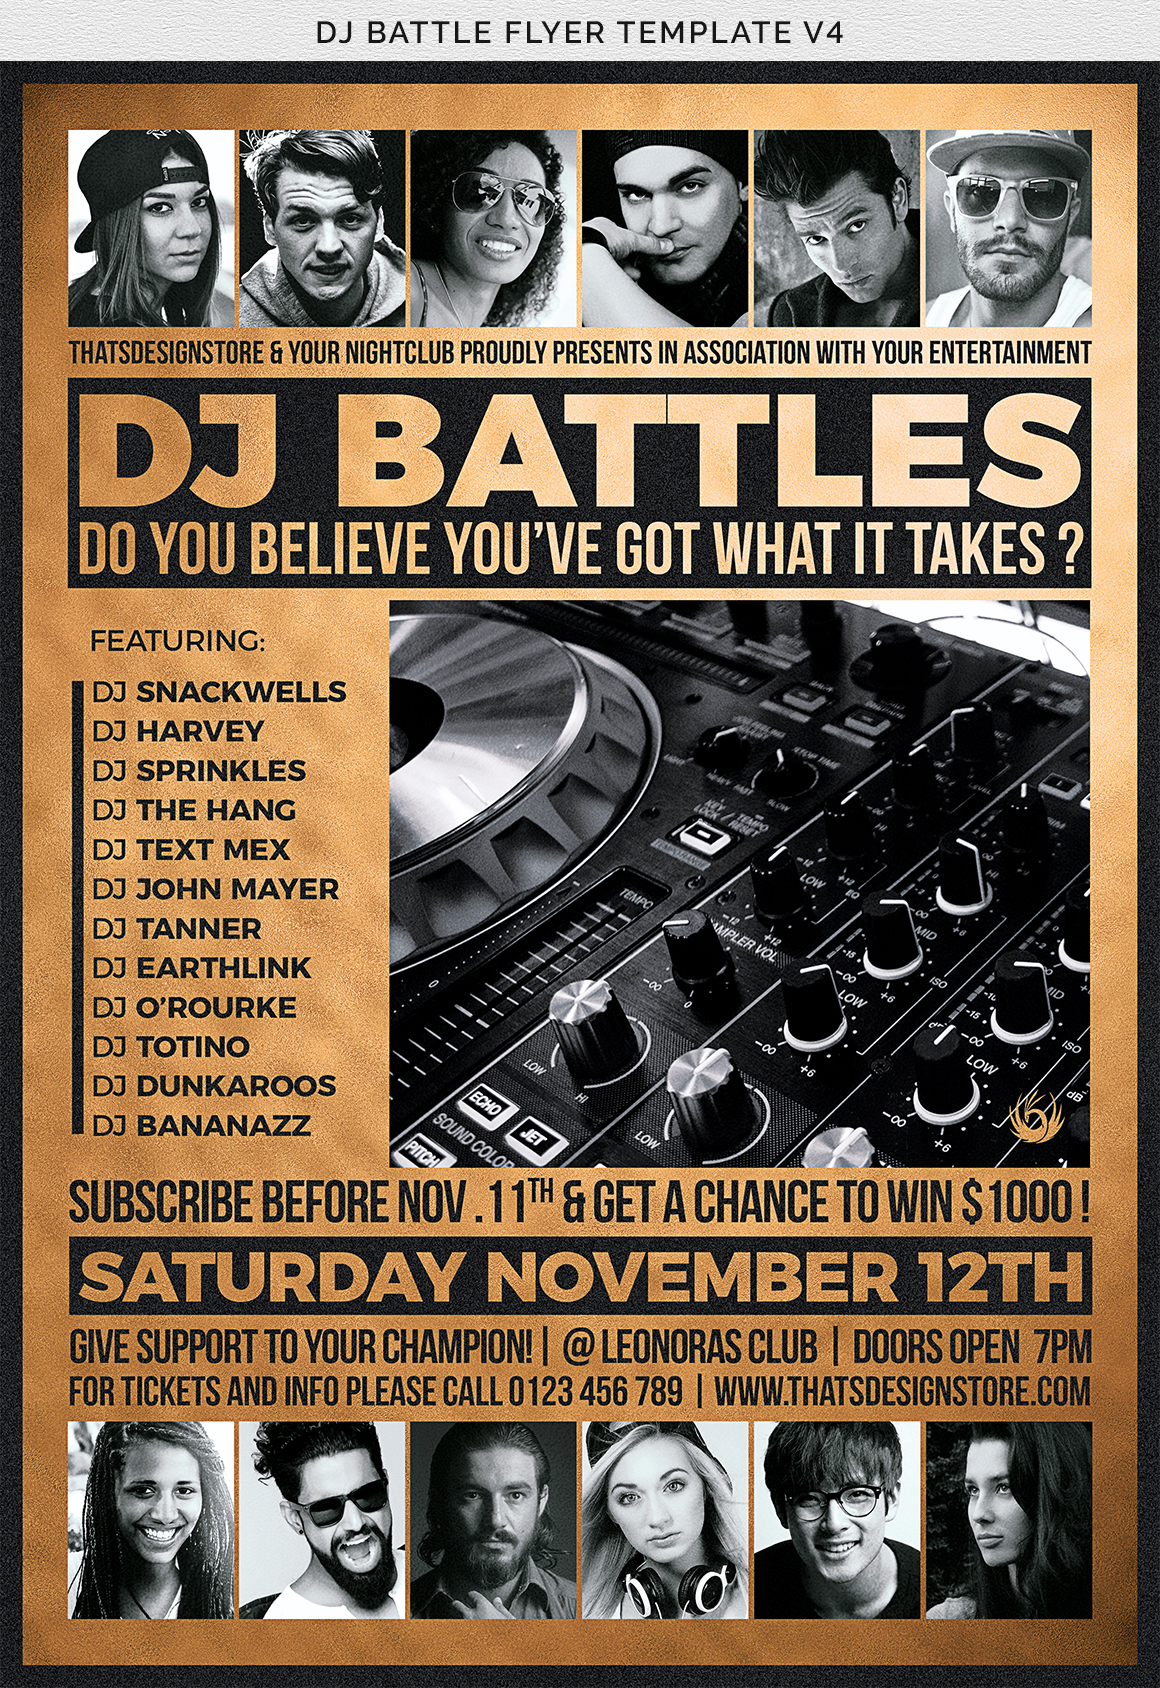 DJ Battle Flyer Template V4 example image 11